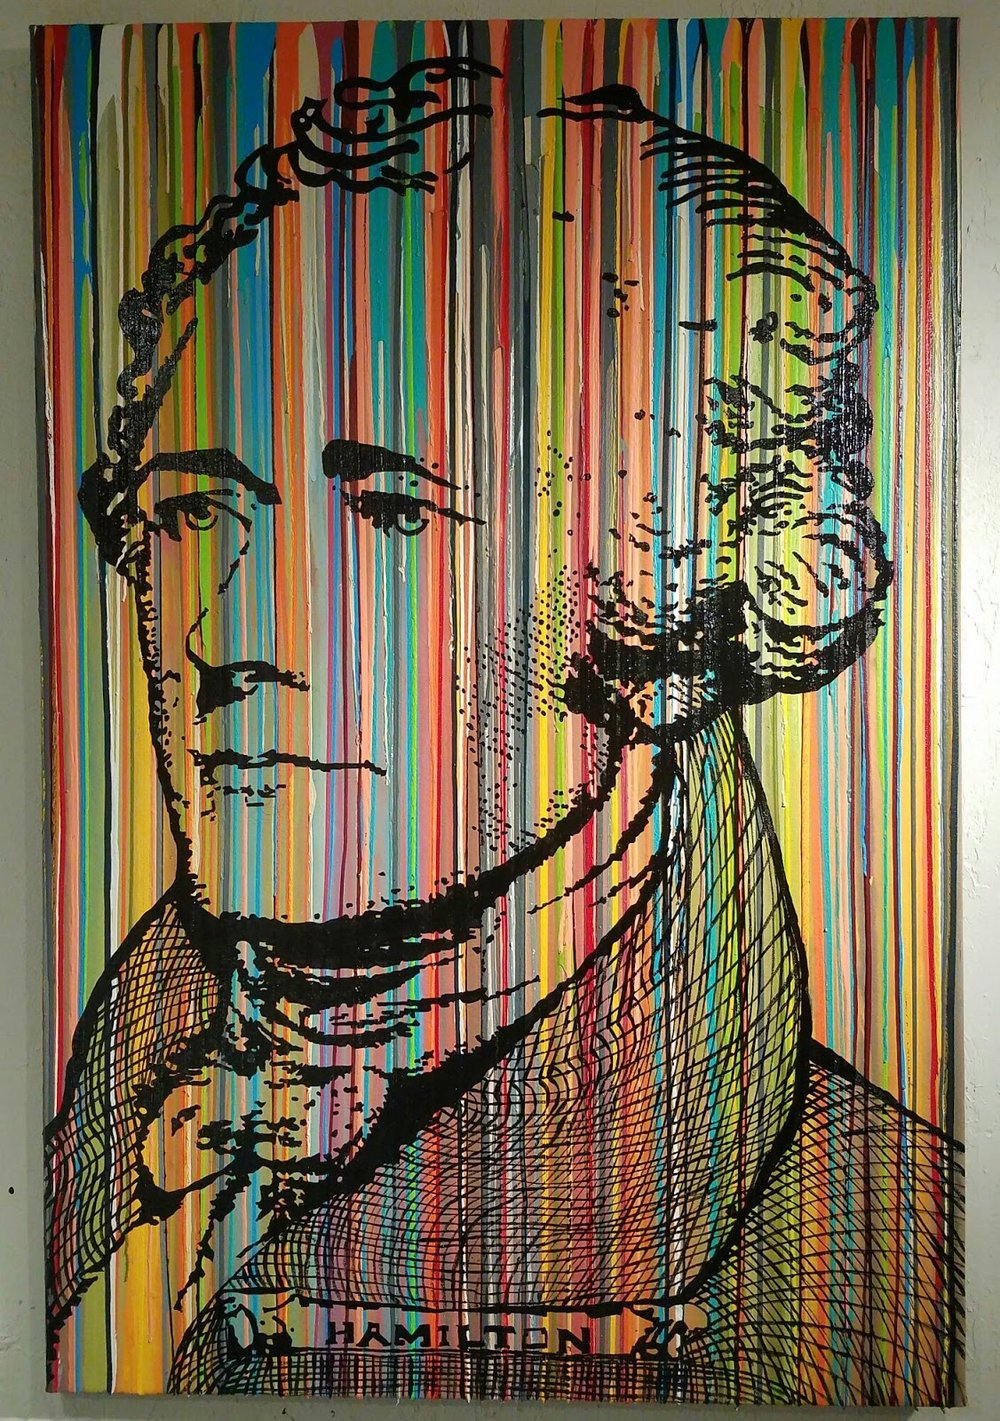 Hamilton-Hamilton 48 x 72 in  Media: enamel, latex, acrylic mixed on canvas